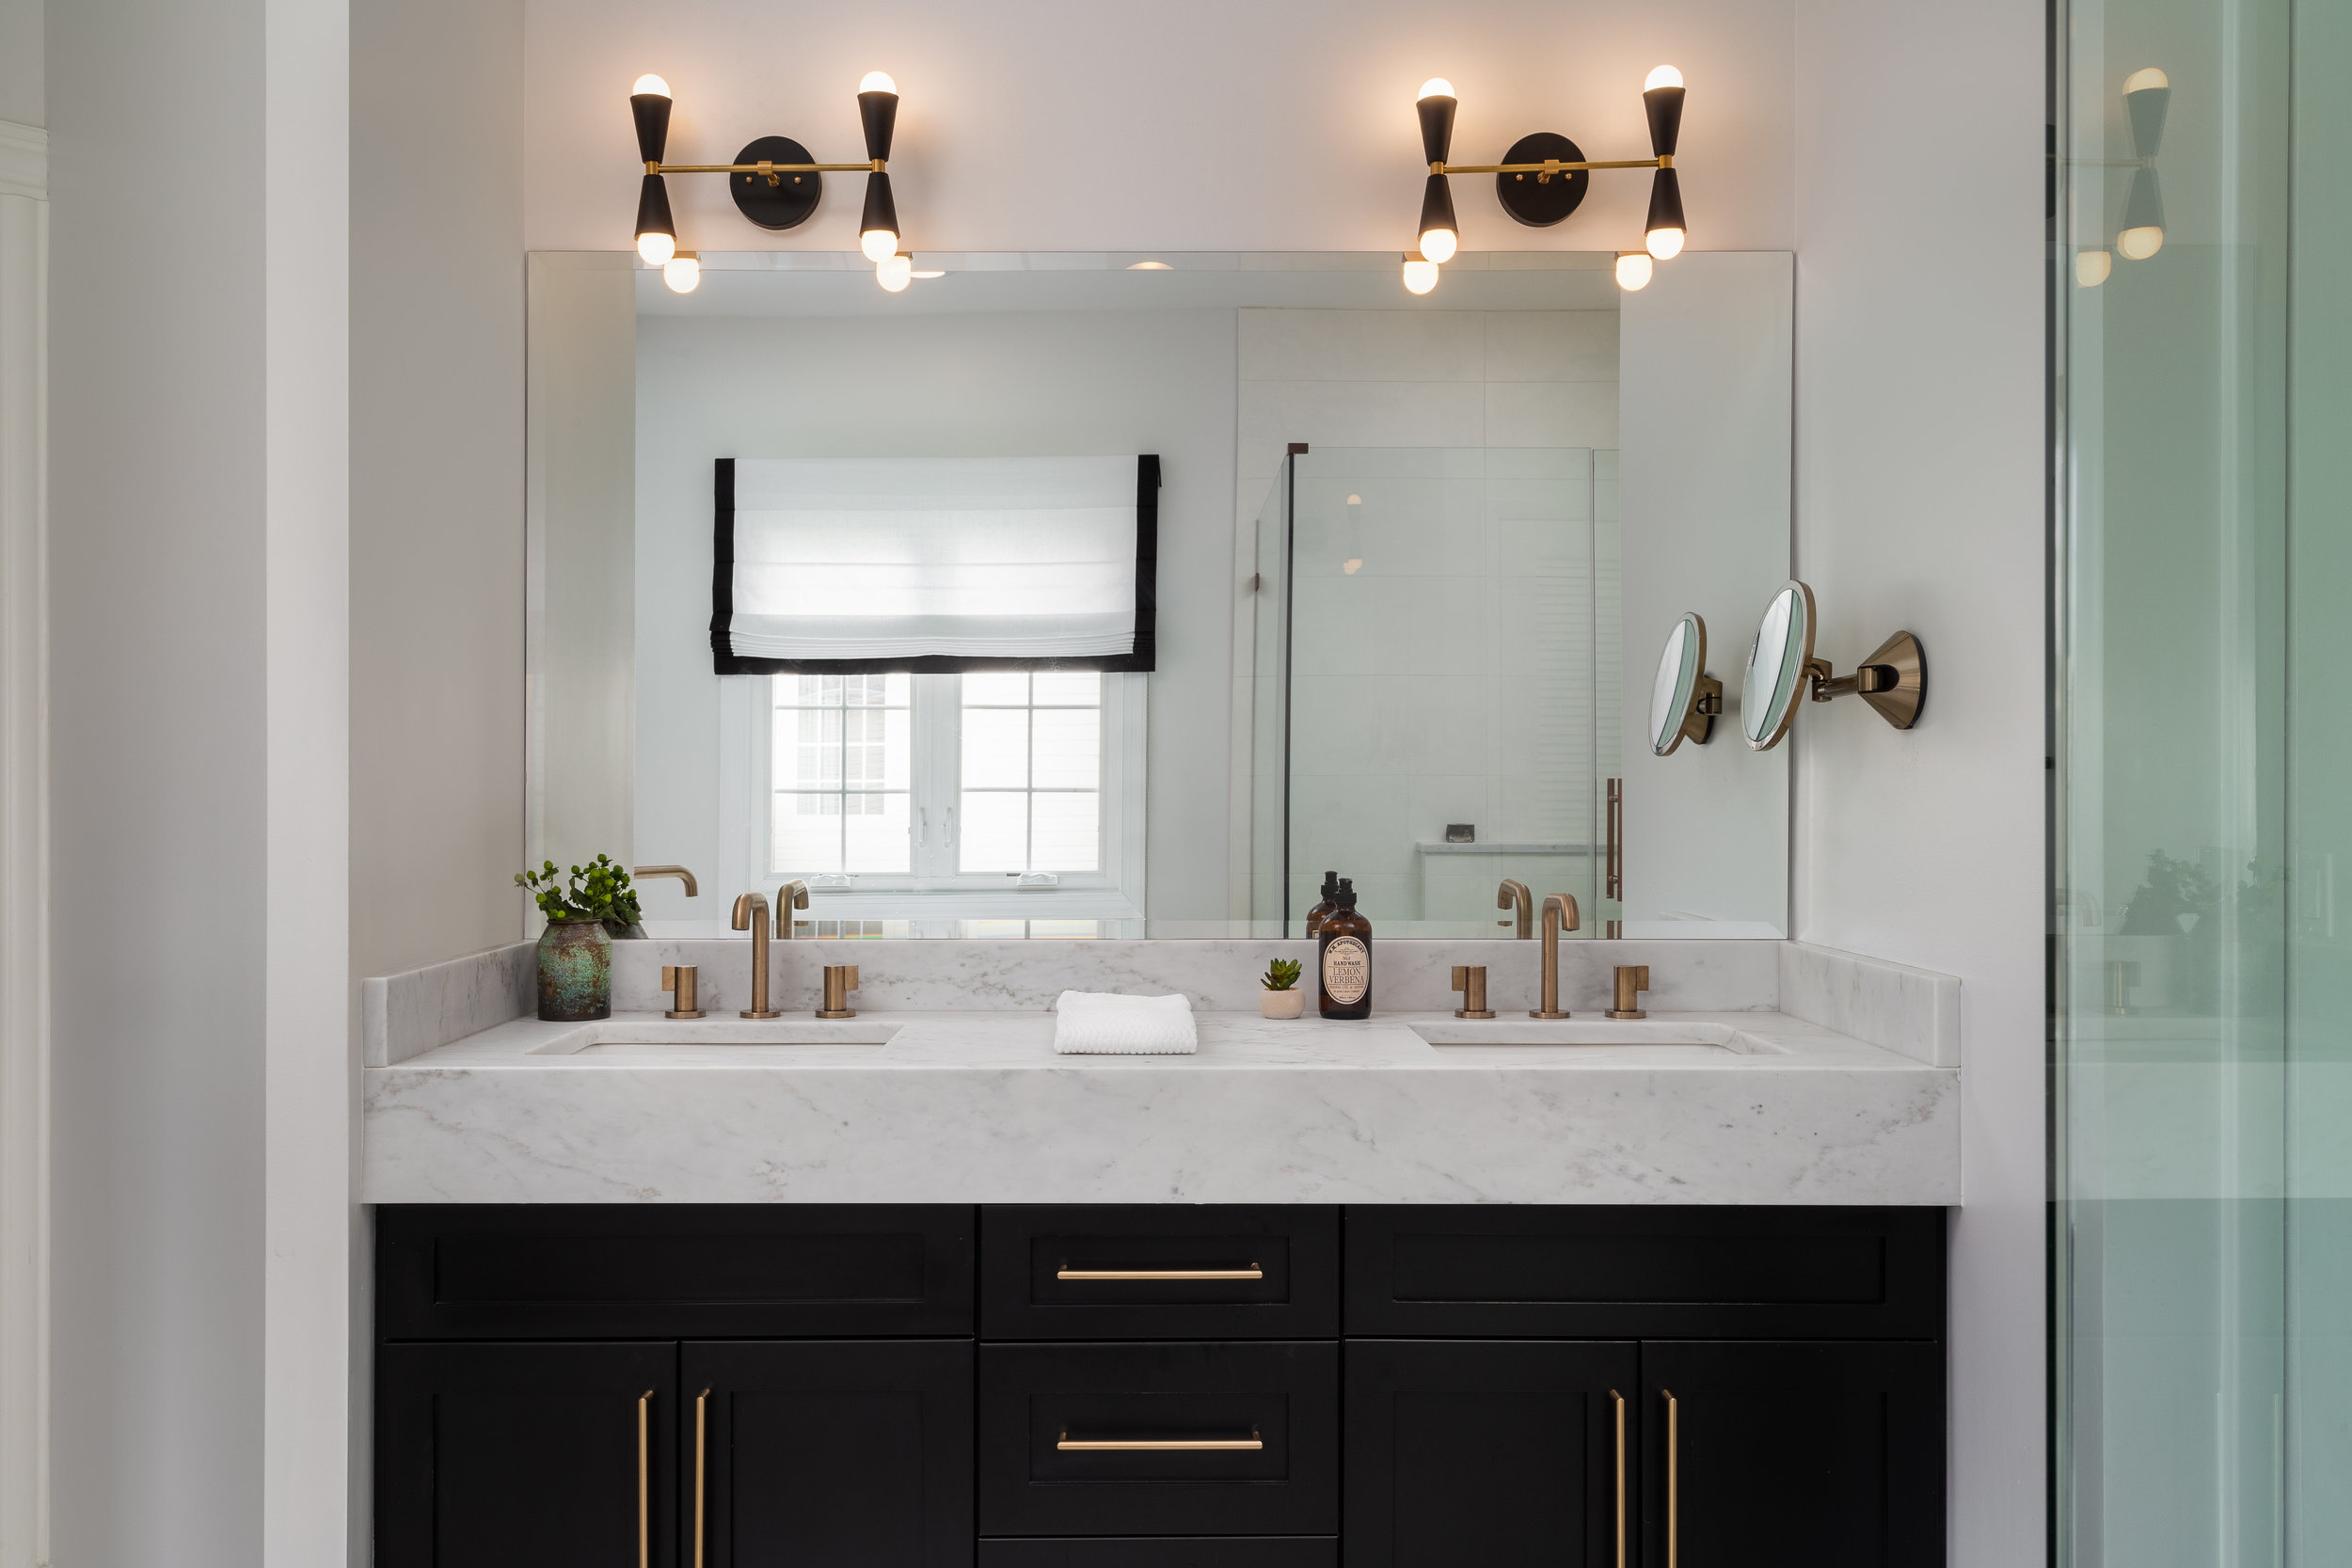 To add some drama, we created a black vanity with a six-inch mitered countertop edge.